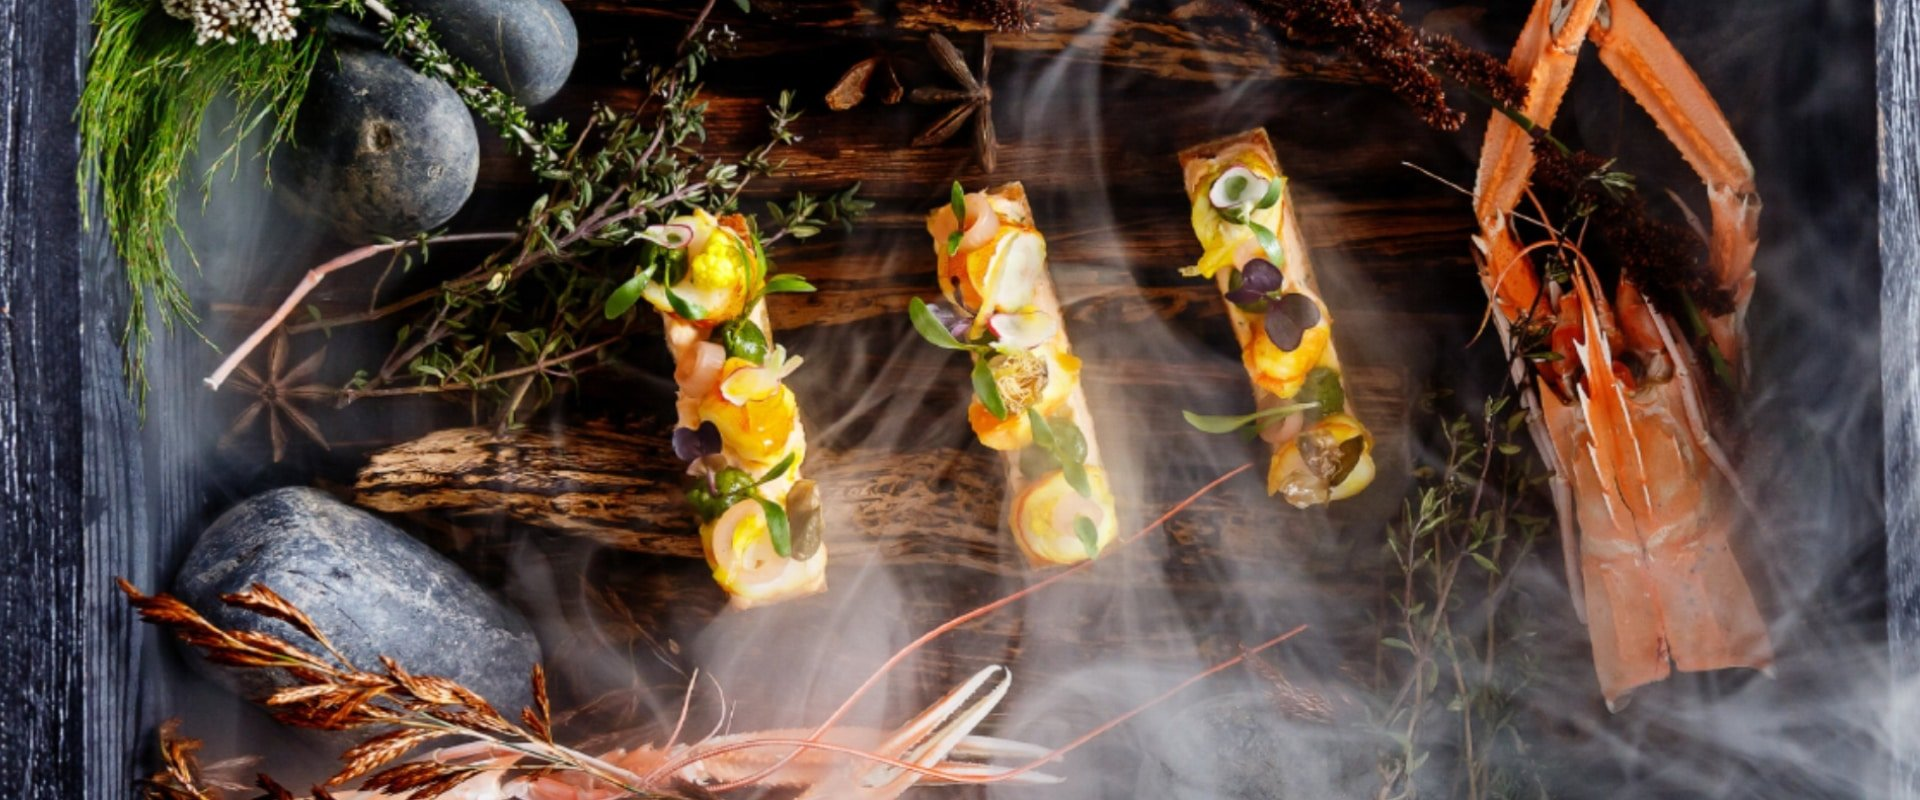 Dine at one of Cape Town's world-wide acclaimed restaurants